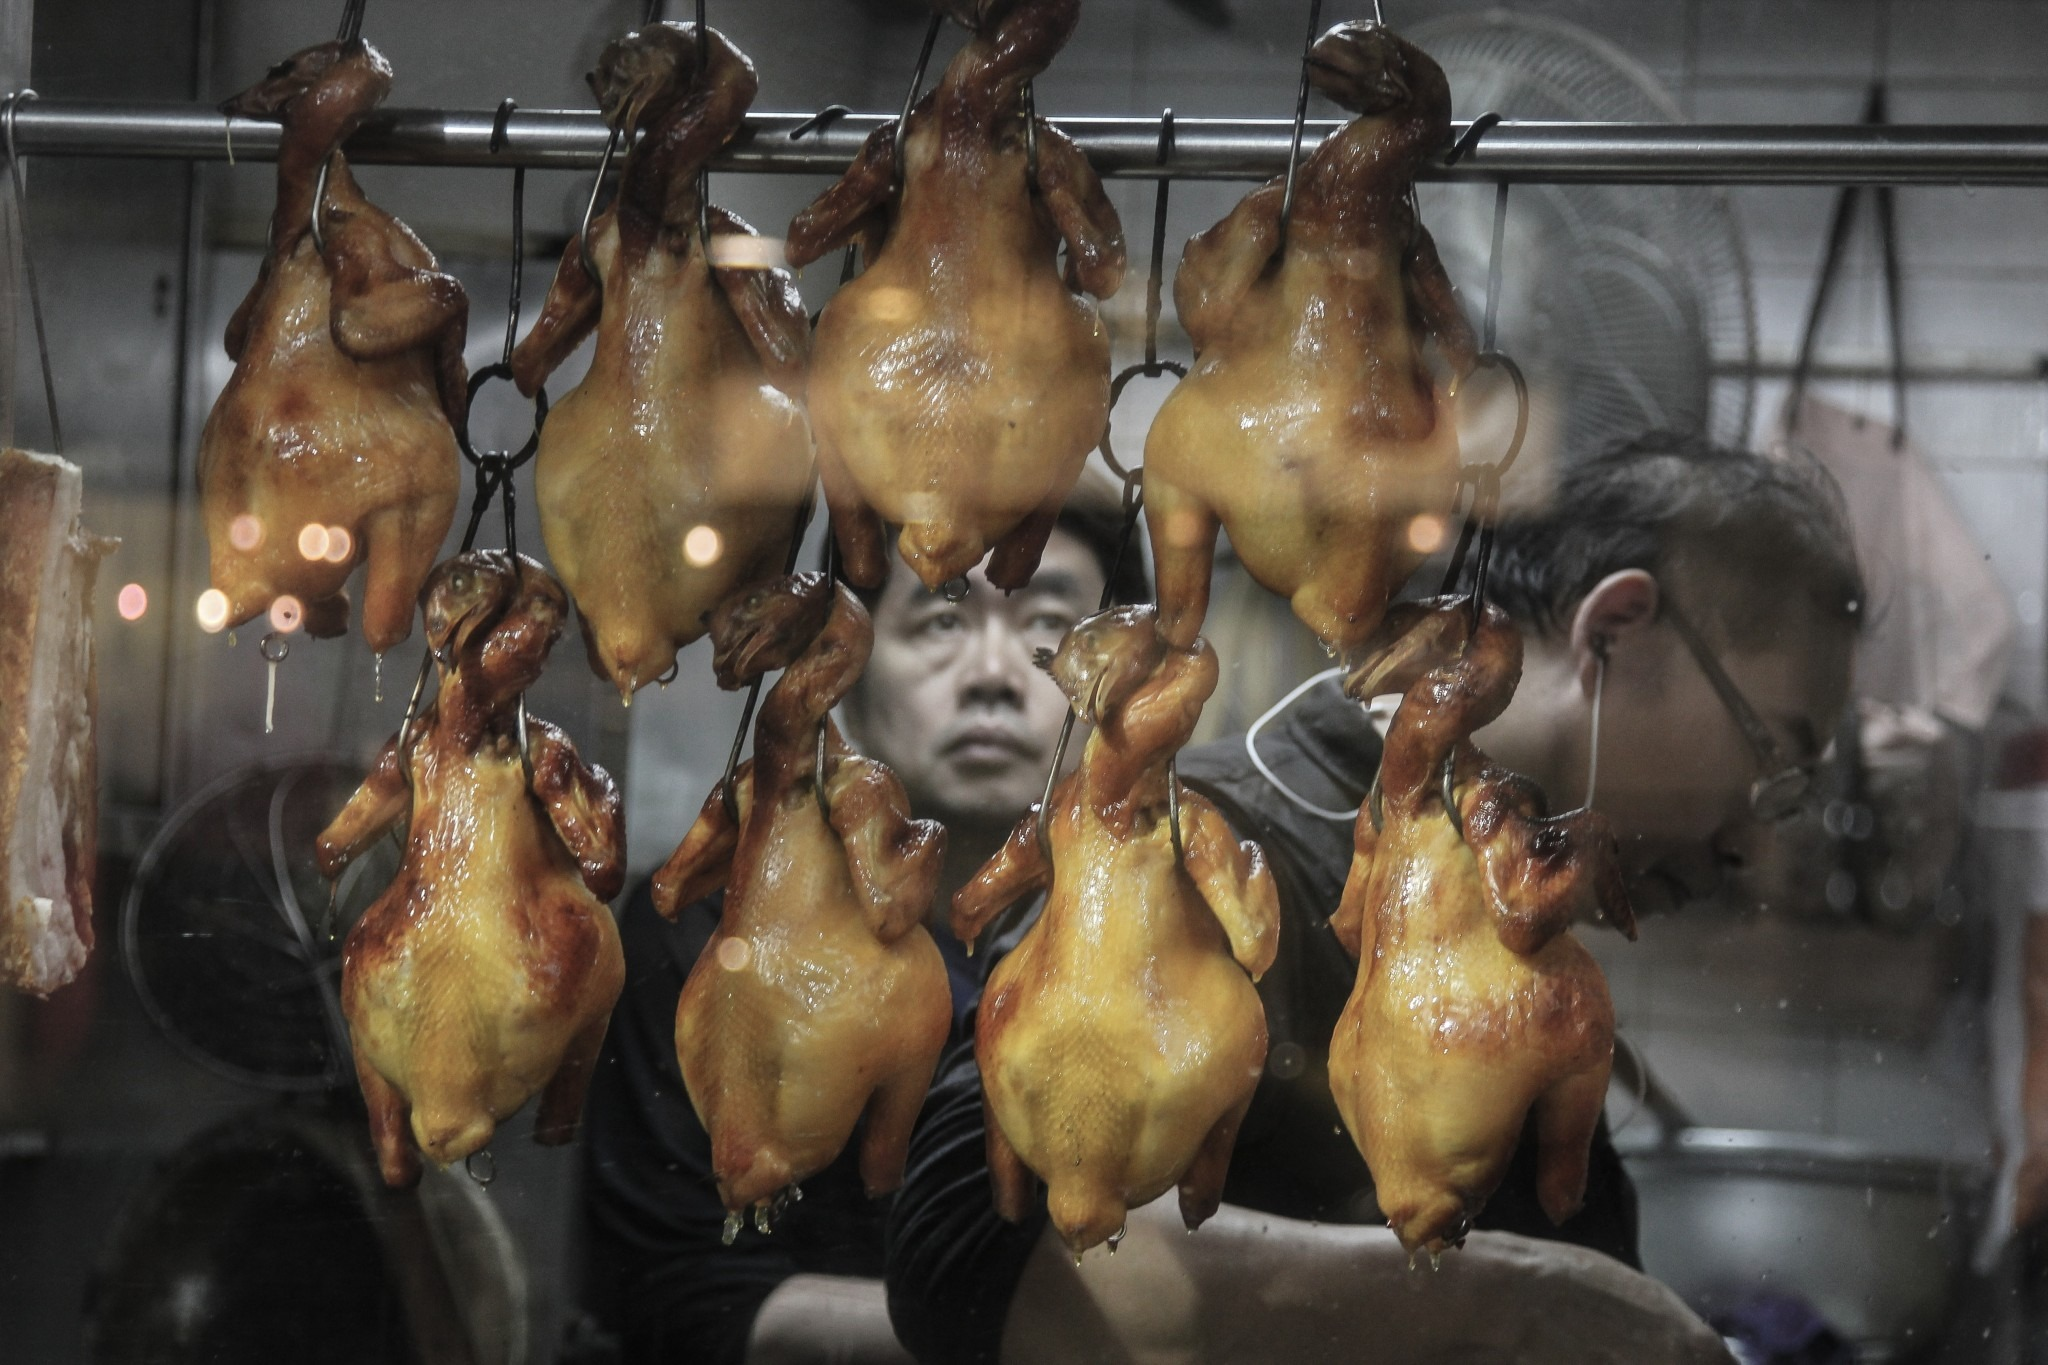 chickens on display in a Hong Kong restaurant window